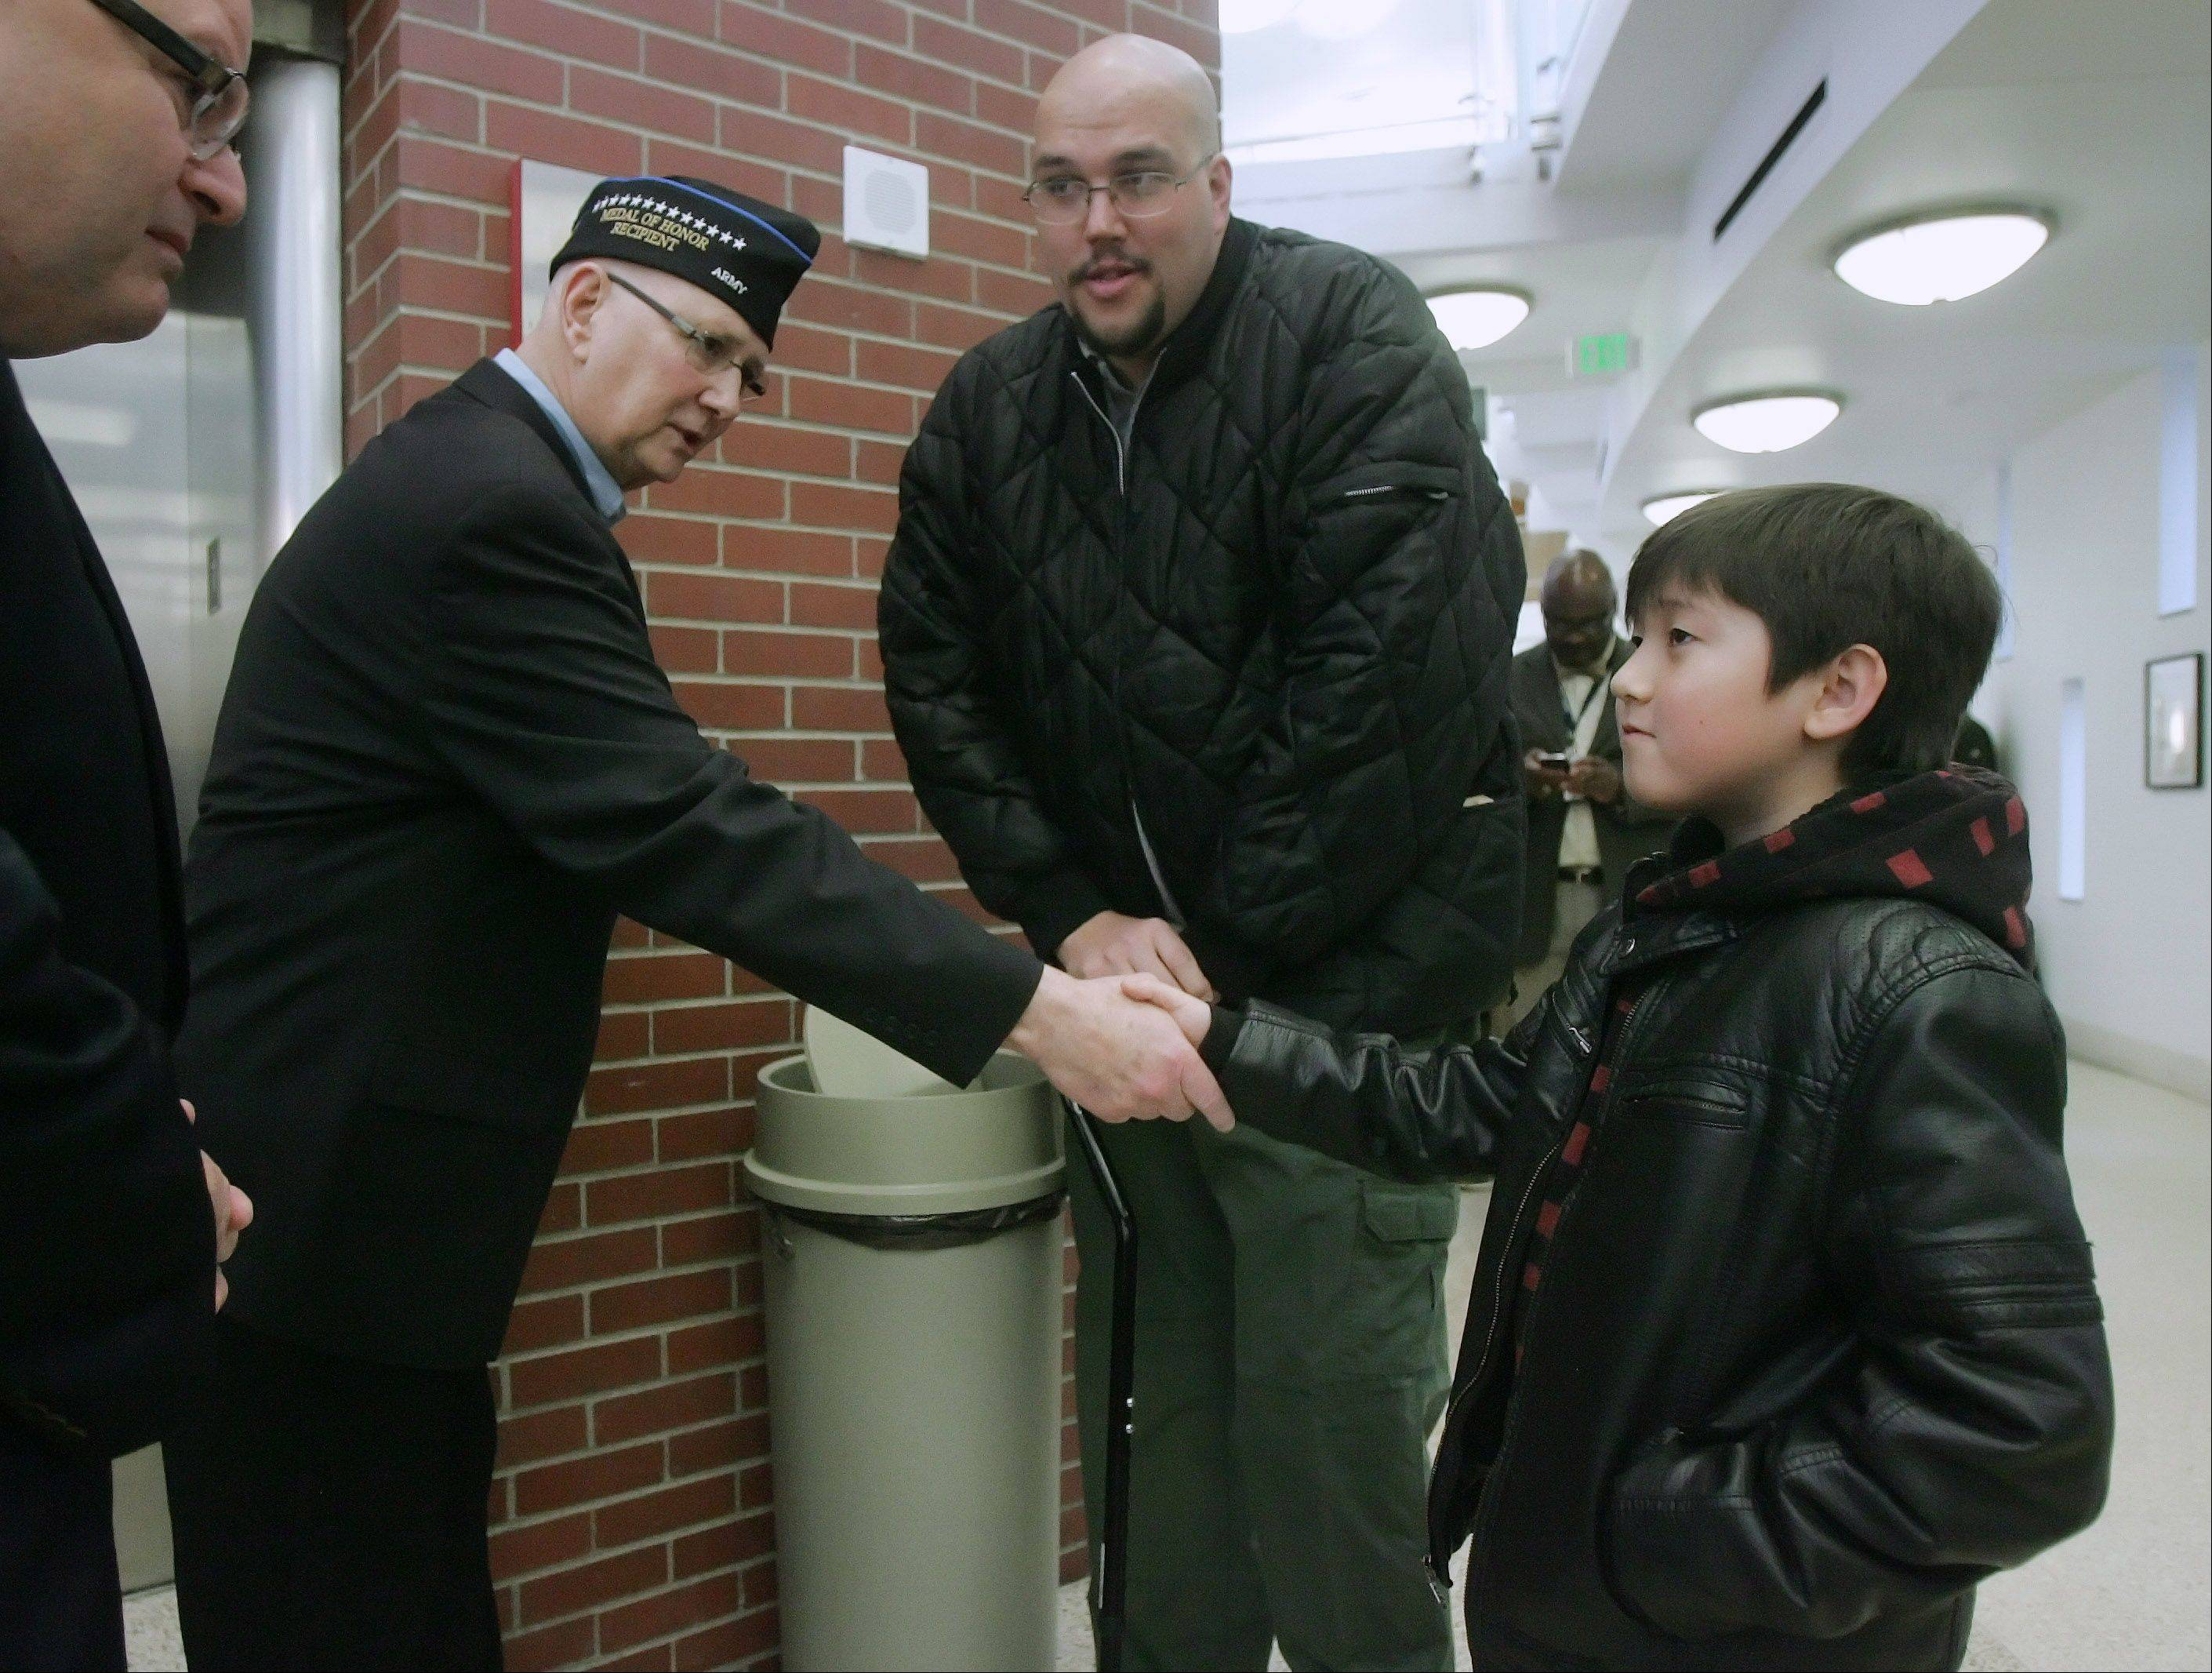 Medal of Honor recipient Allen Lynch, of Gurnee, shakes hands with ten-year-old Jinu Puclik, of Glenview, and his dad, Tim, at the Captain James A. Lovell Federal Health Care Center Monday. Lynch was recognized during a ceremony commemorating National Medal of Honor Day. The former U.S. Army sergeant received his medal during his service in the Vietnam War.